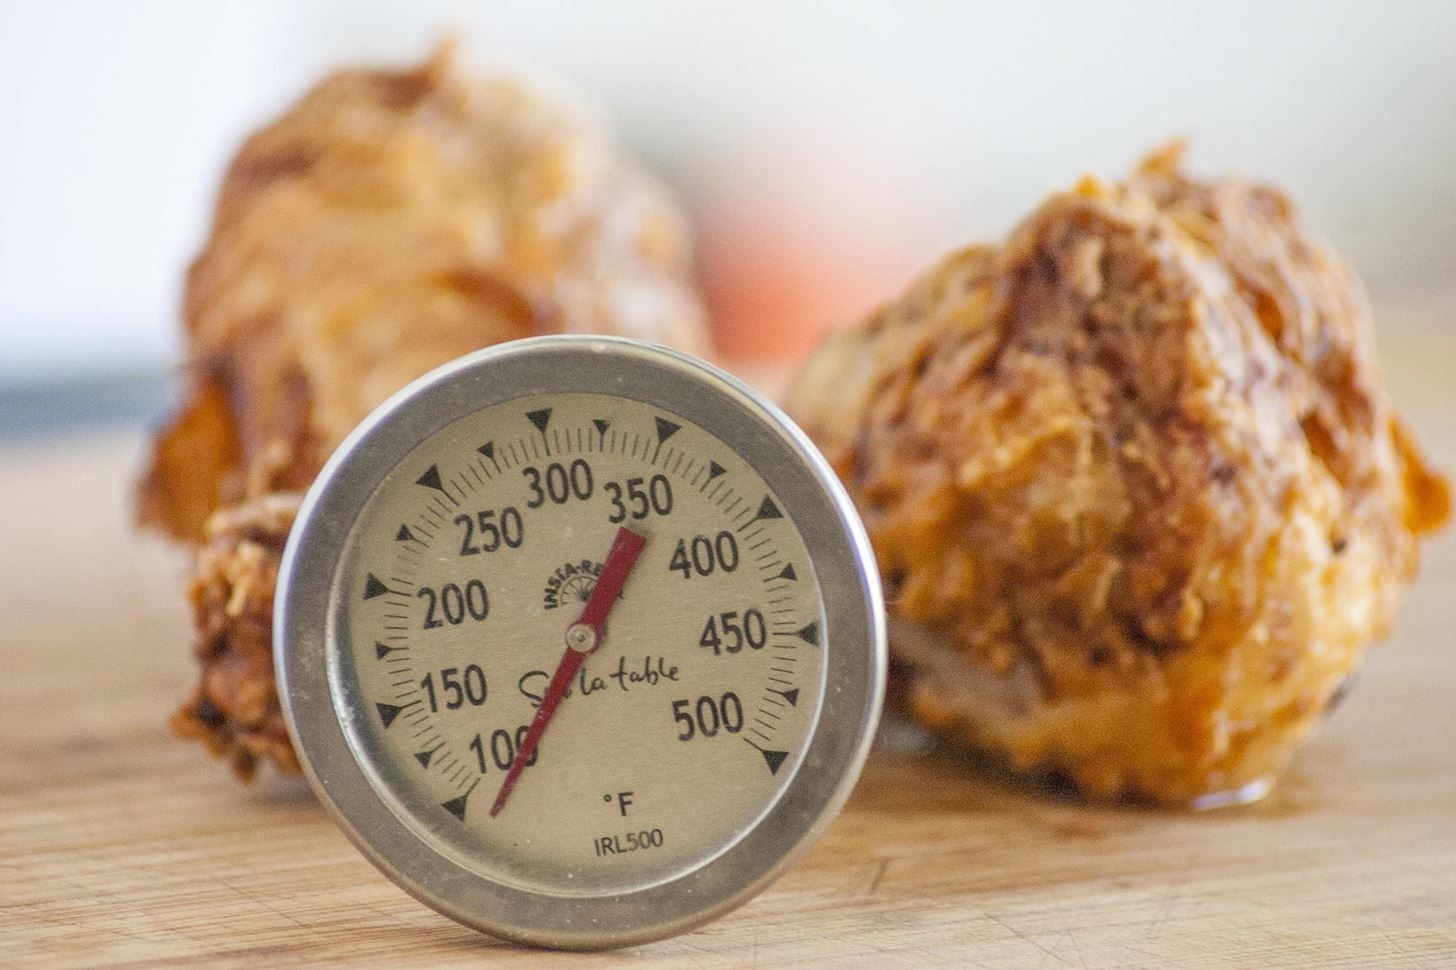 Make the Best Fried Chicken of Your Life with These 5 Pro Tips